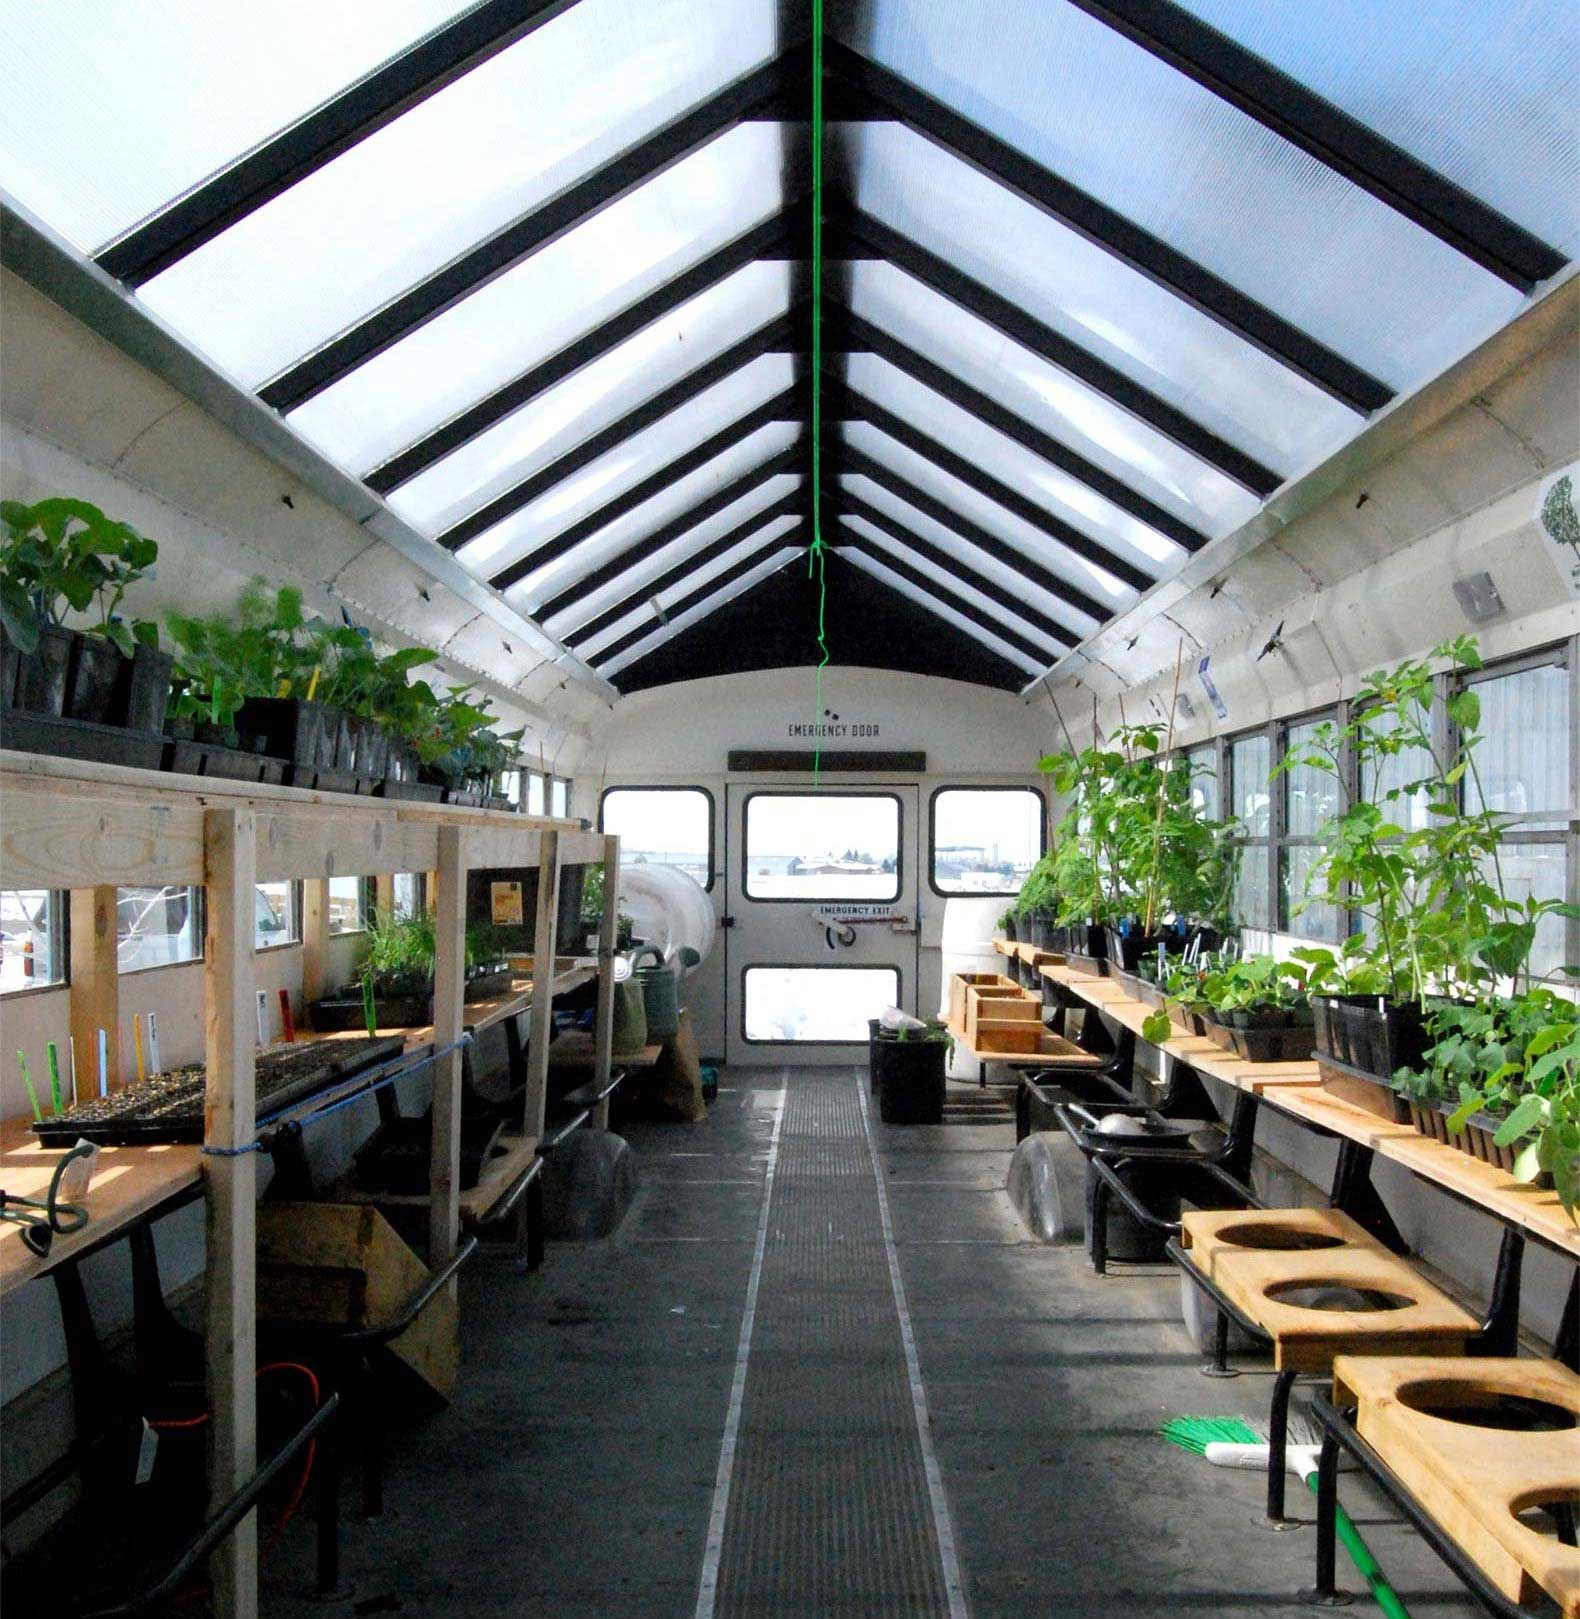 The bus seat frames were transformed into plant tables, and herbs and vegetables were planted throughout.